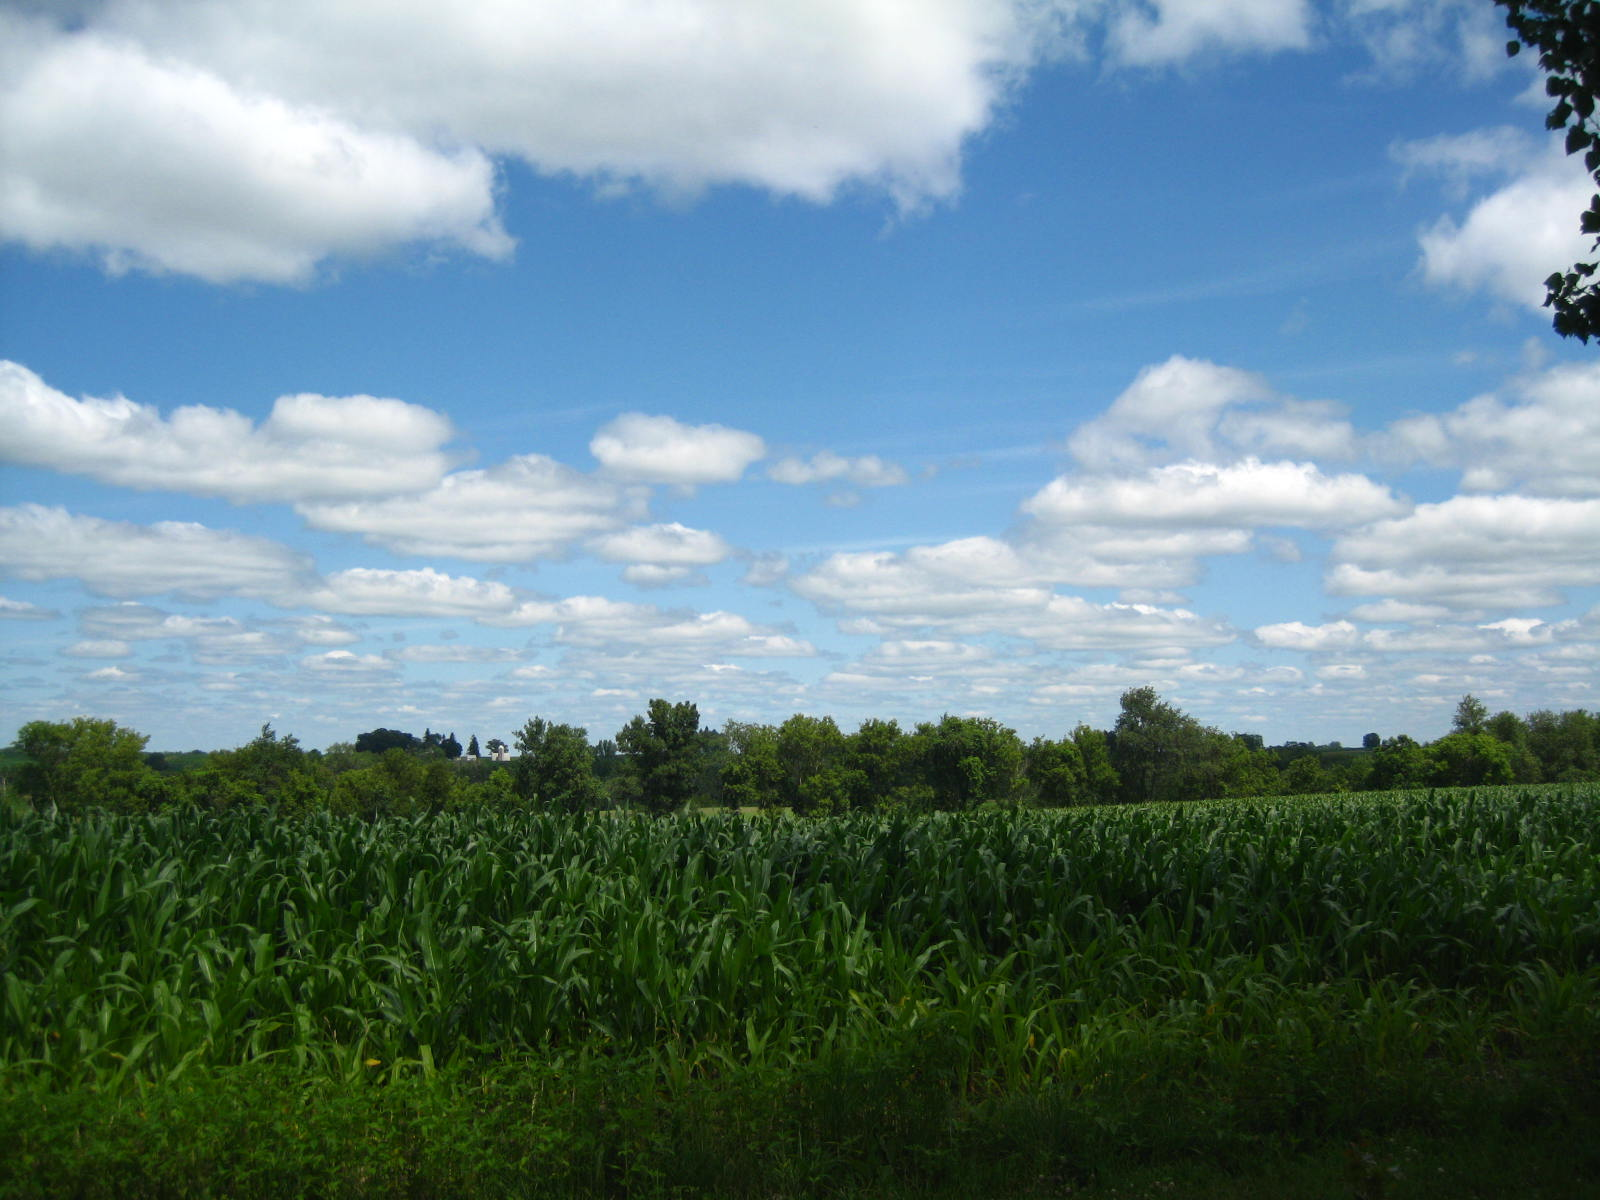 Cornfields behind the house.